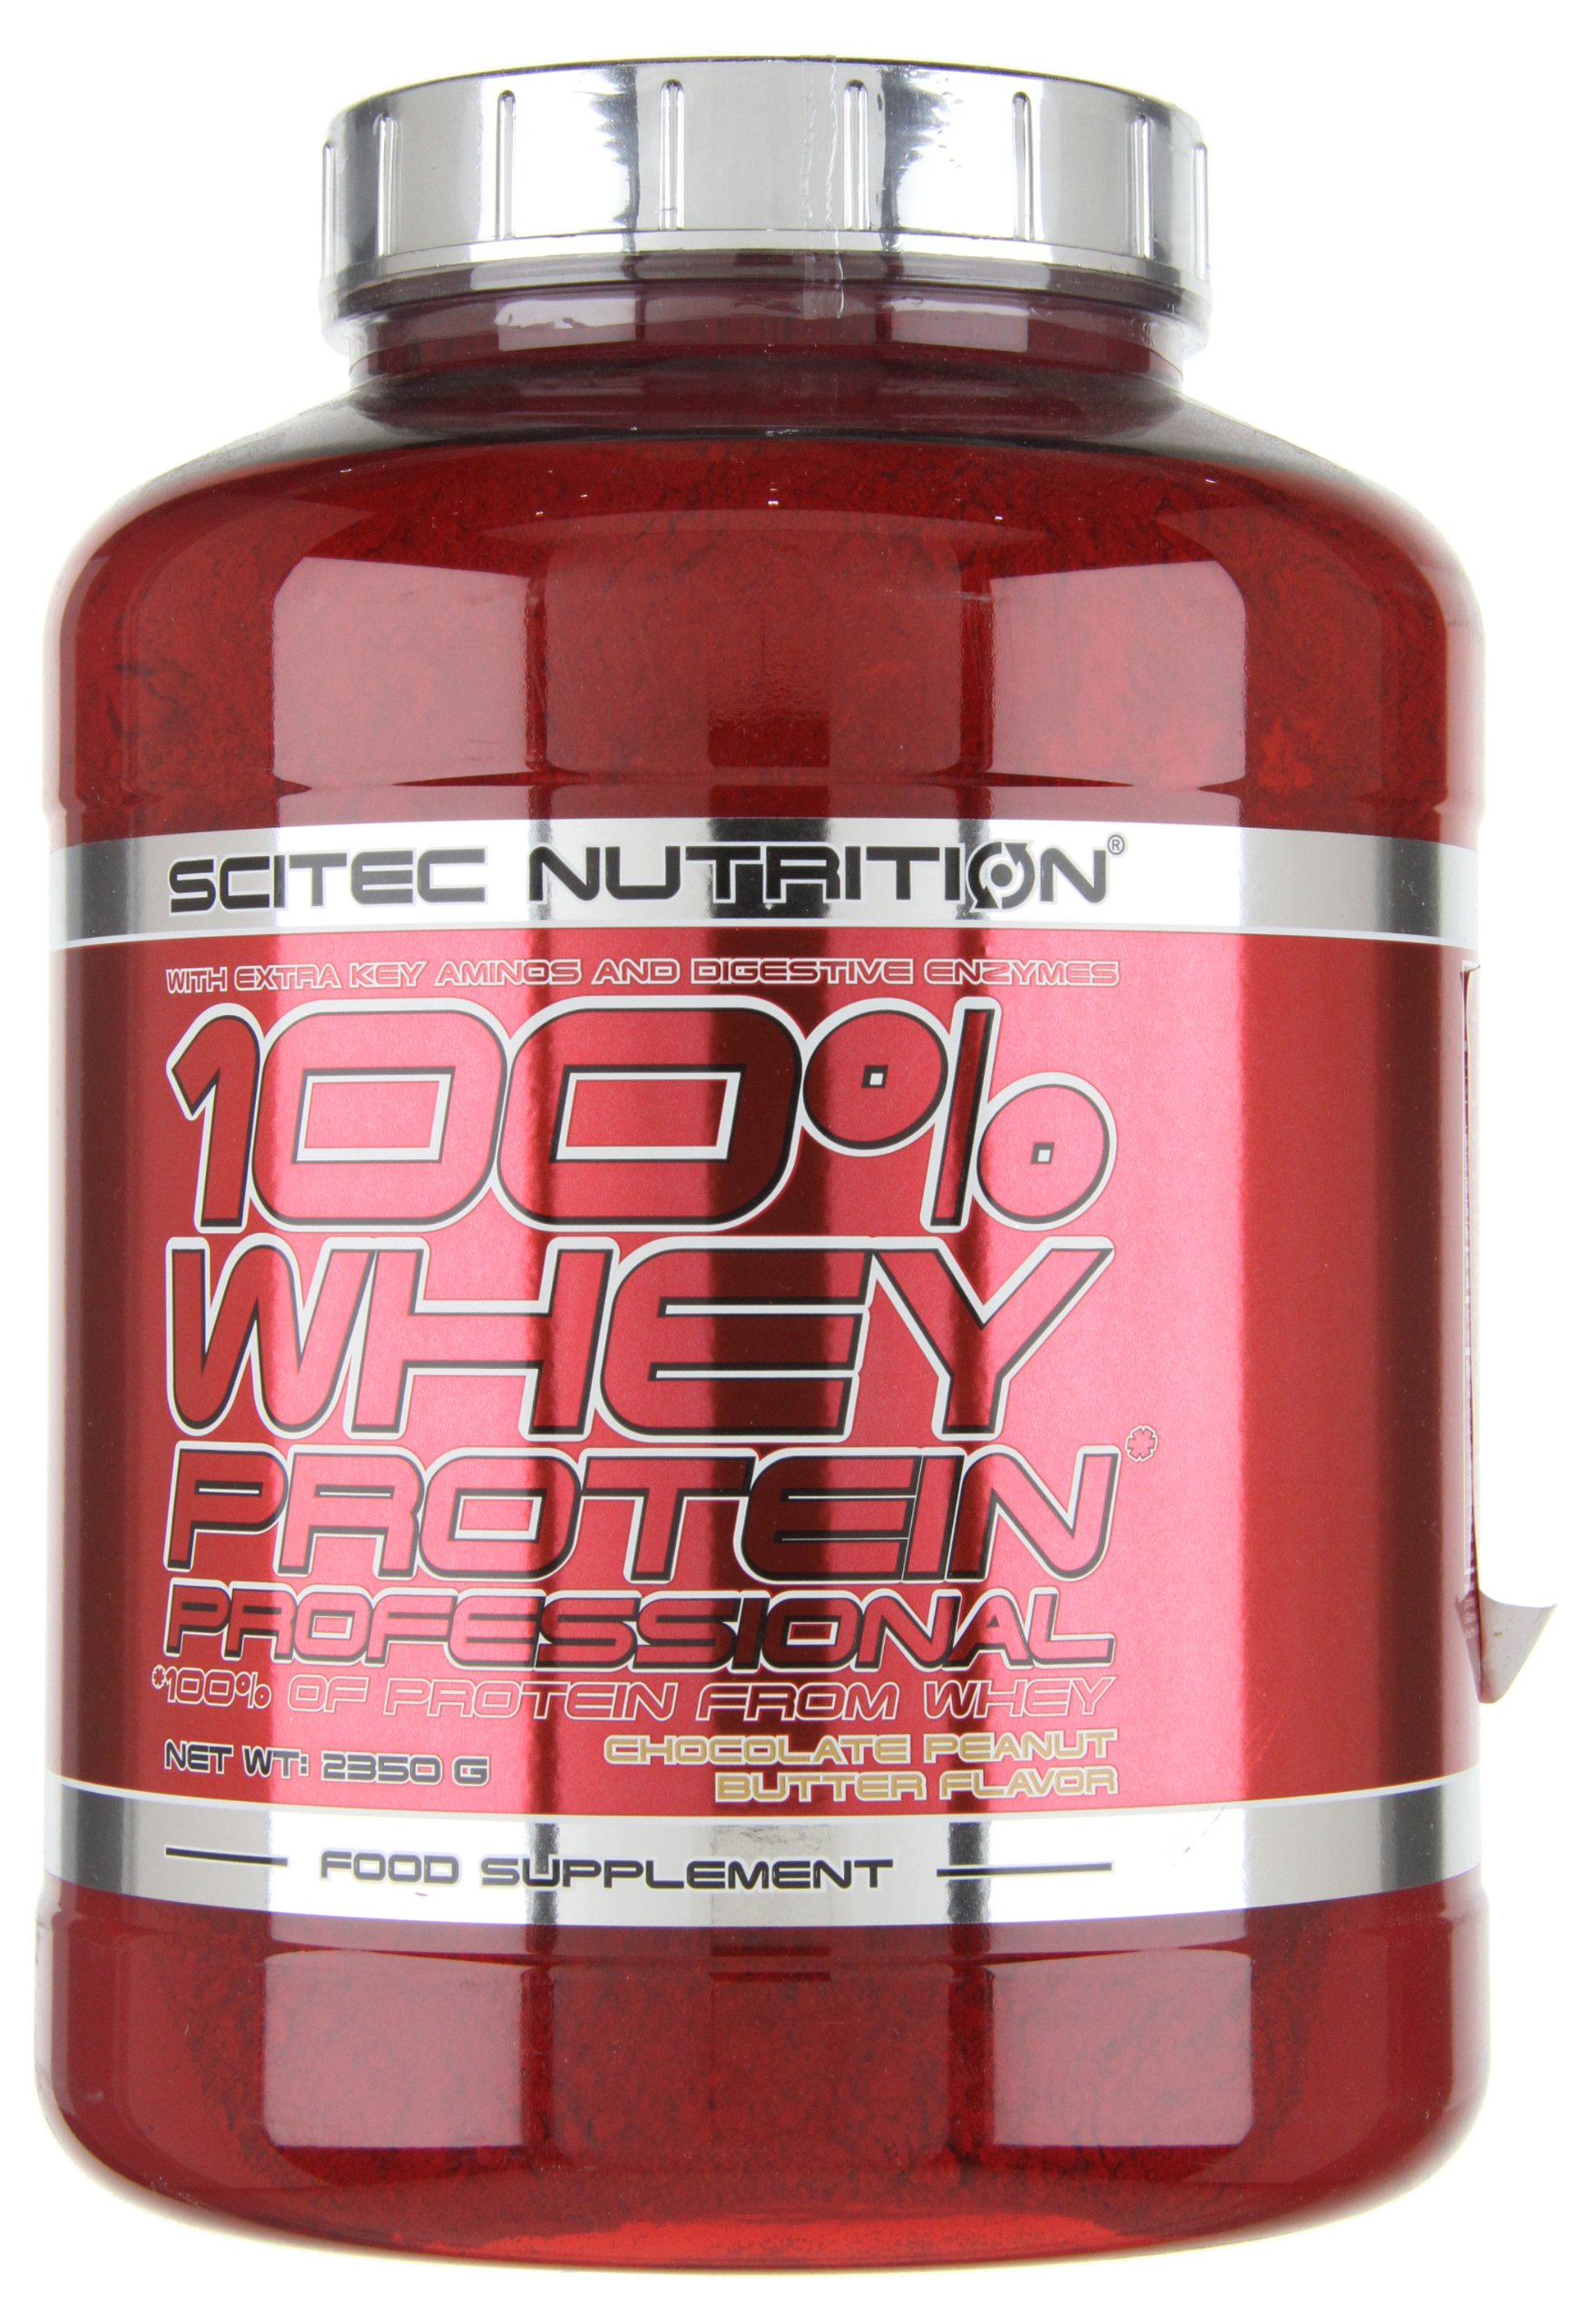 100% whey protein professional - 5.18 lbs - Chocolat Peanut Butter - Scitec nutrition